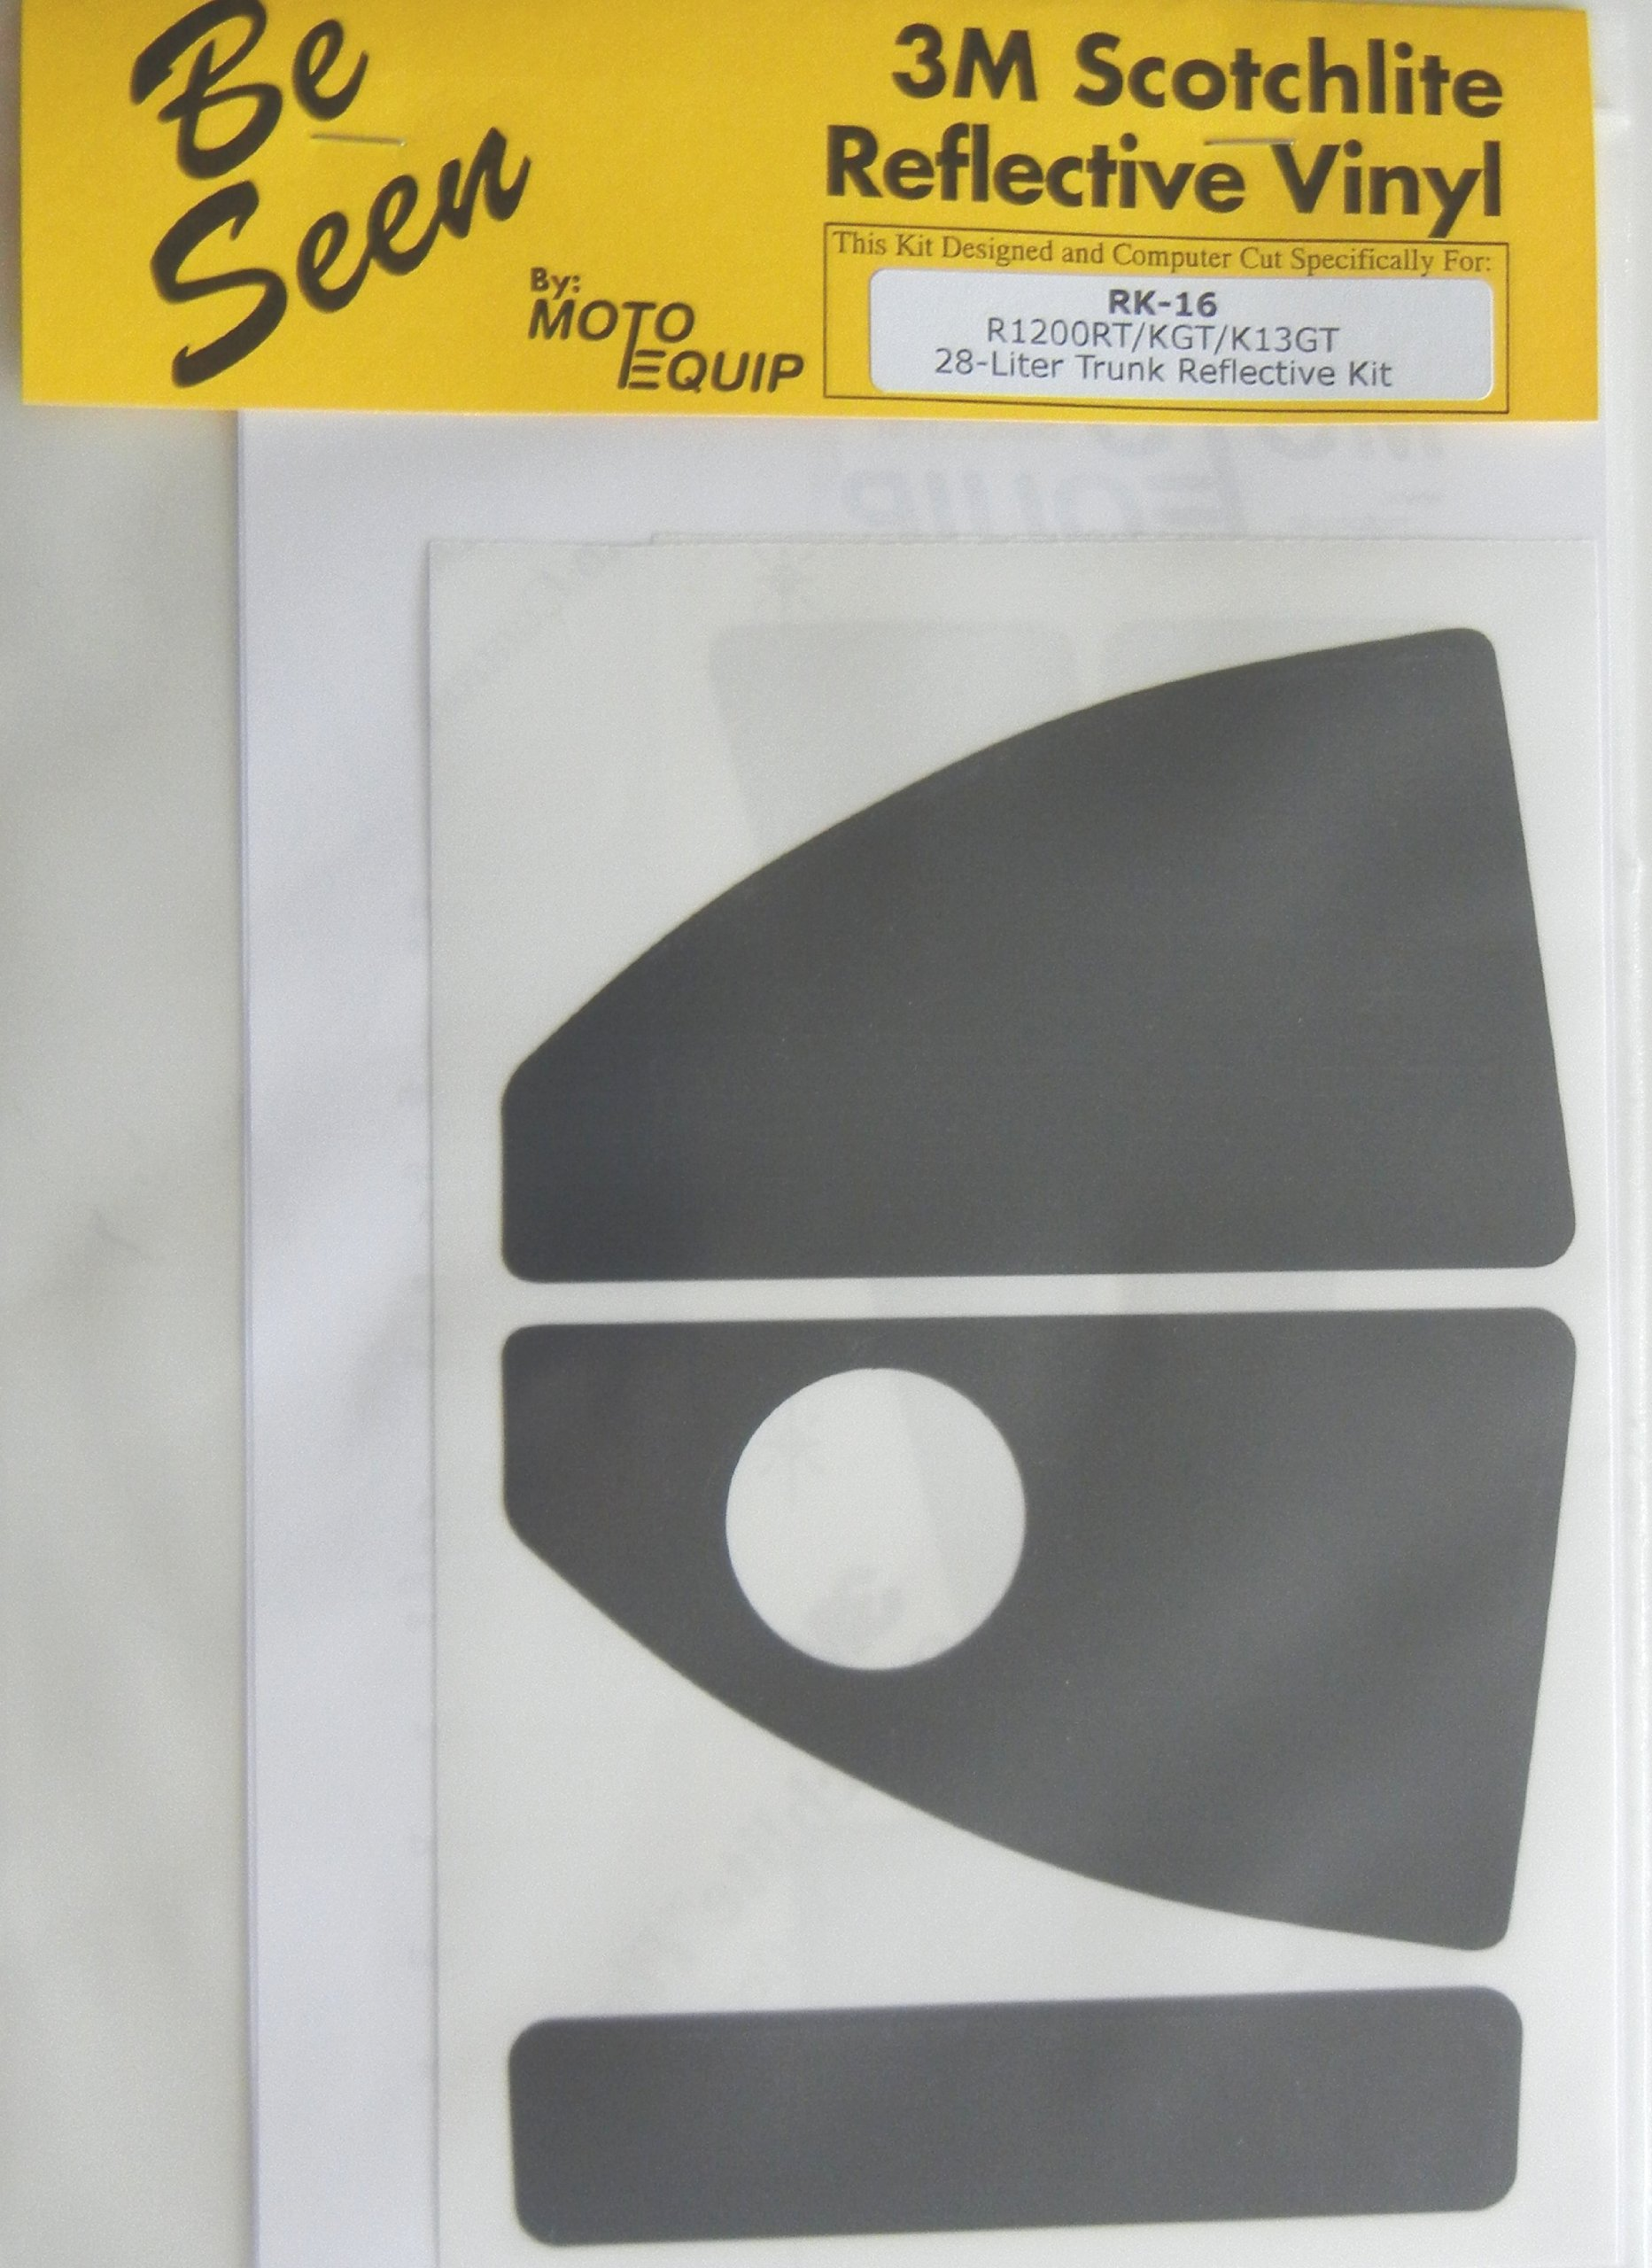 Moto Equip SILVER Reflective Sticker Kit made from 3M Scotchlite Vinyl tape for BMW R1200GS F800GS Alum Adv Trunk Top Case ME-RK-35S